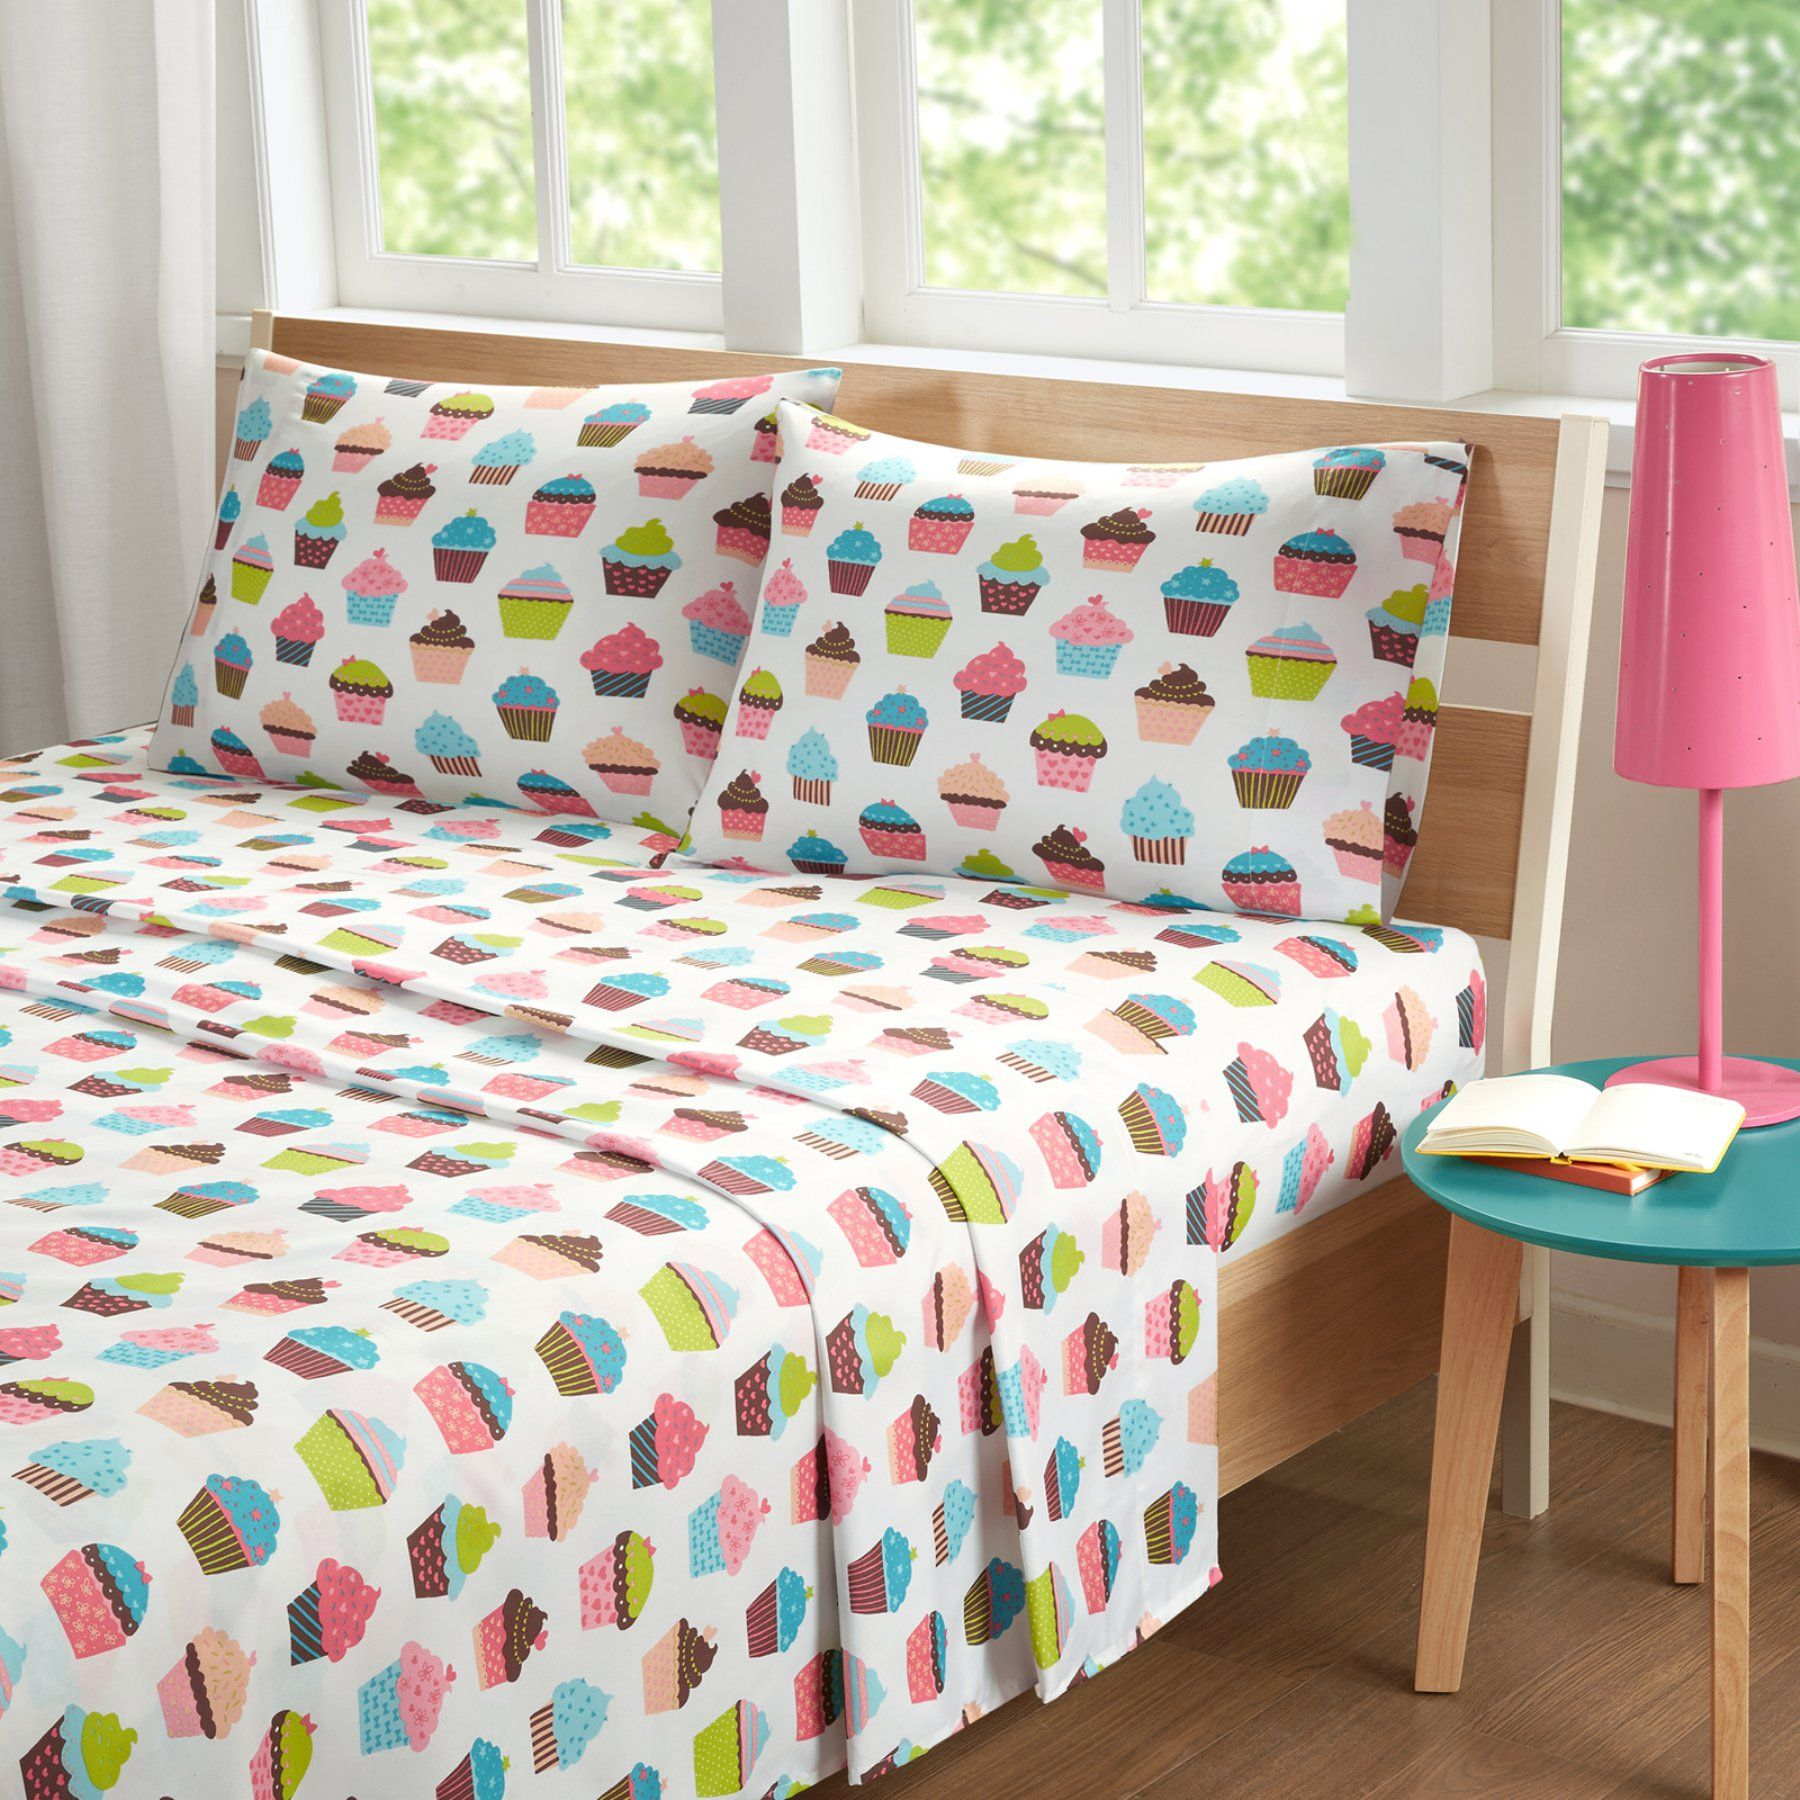 Cupcake Dreams Kids Sheet Set By Mi Zone  Mz20 0550